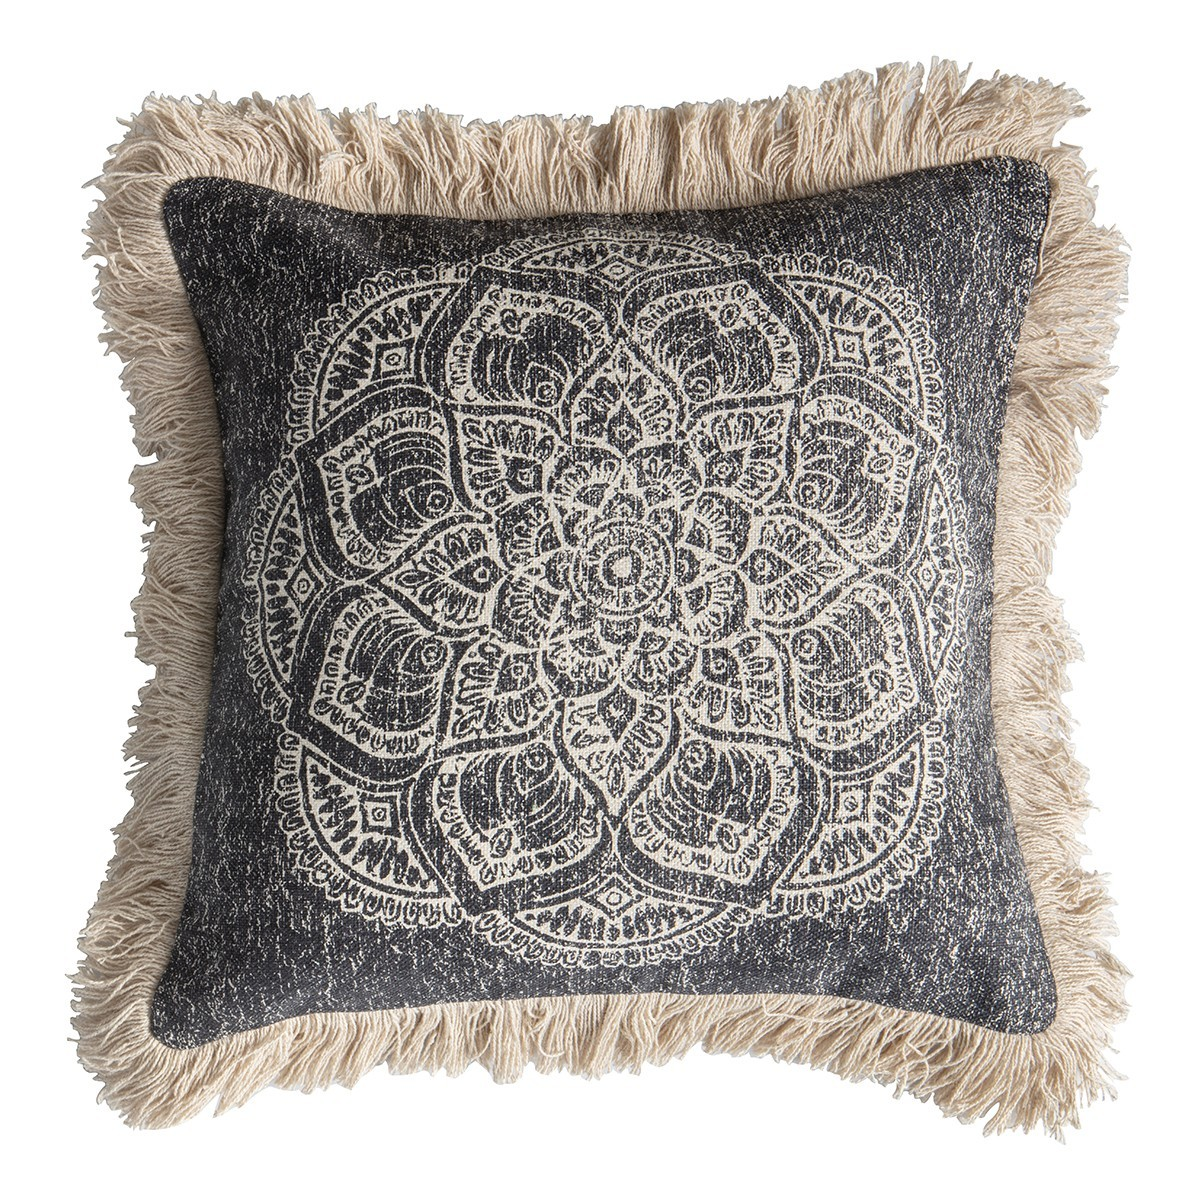 BAshtonco Medallion Feather Filled Fringed Cotton Scatter Cushion